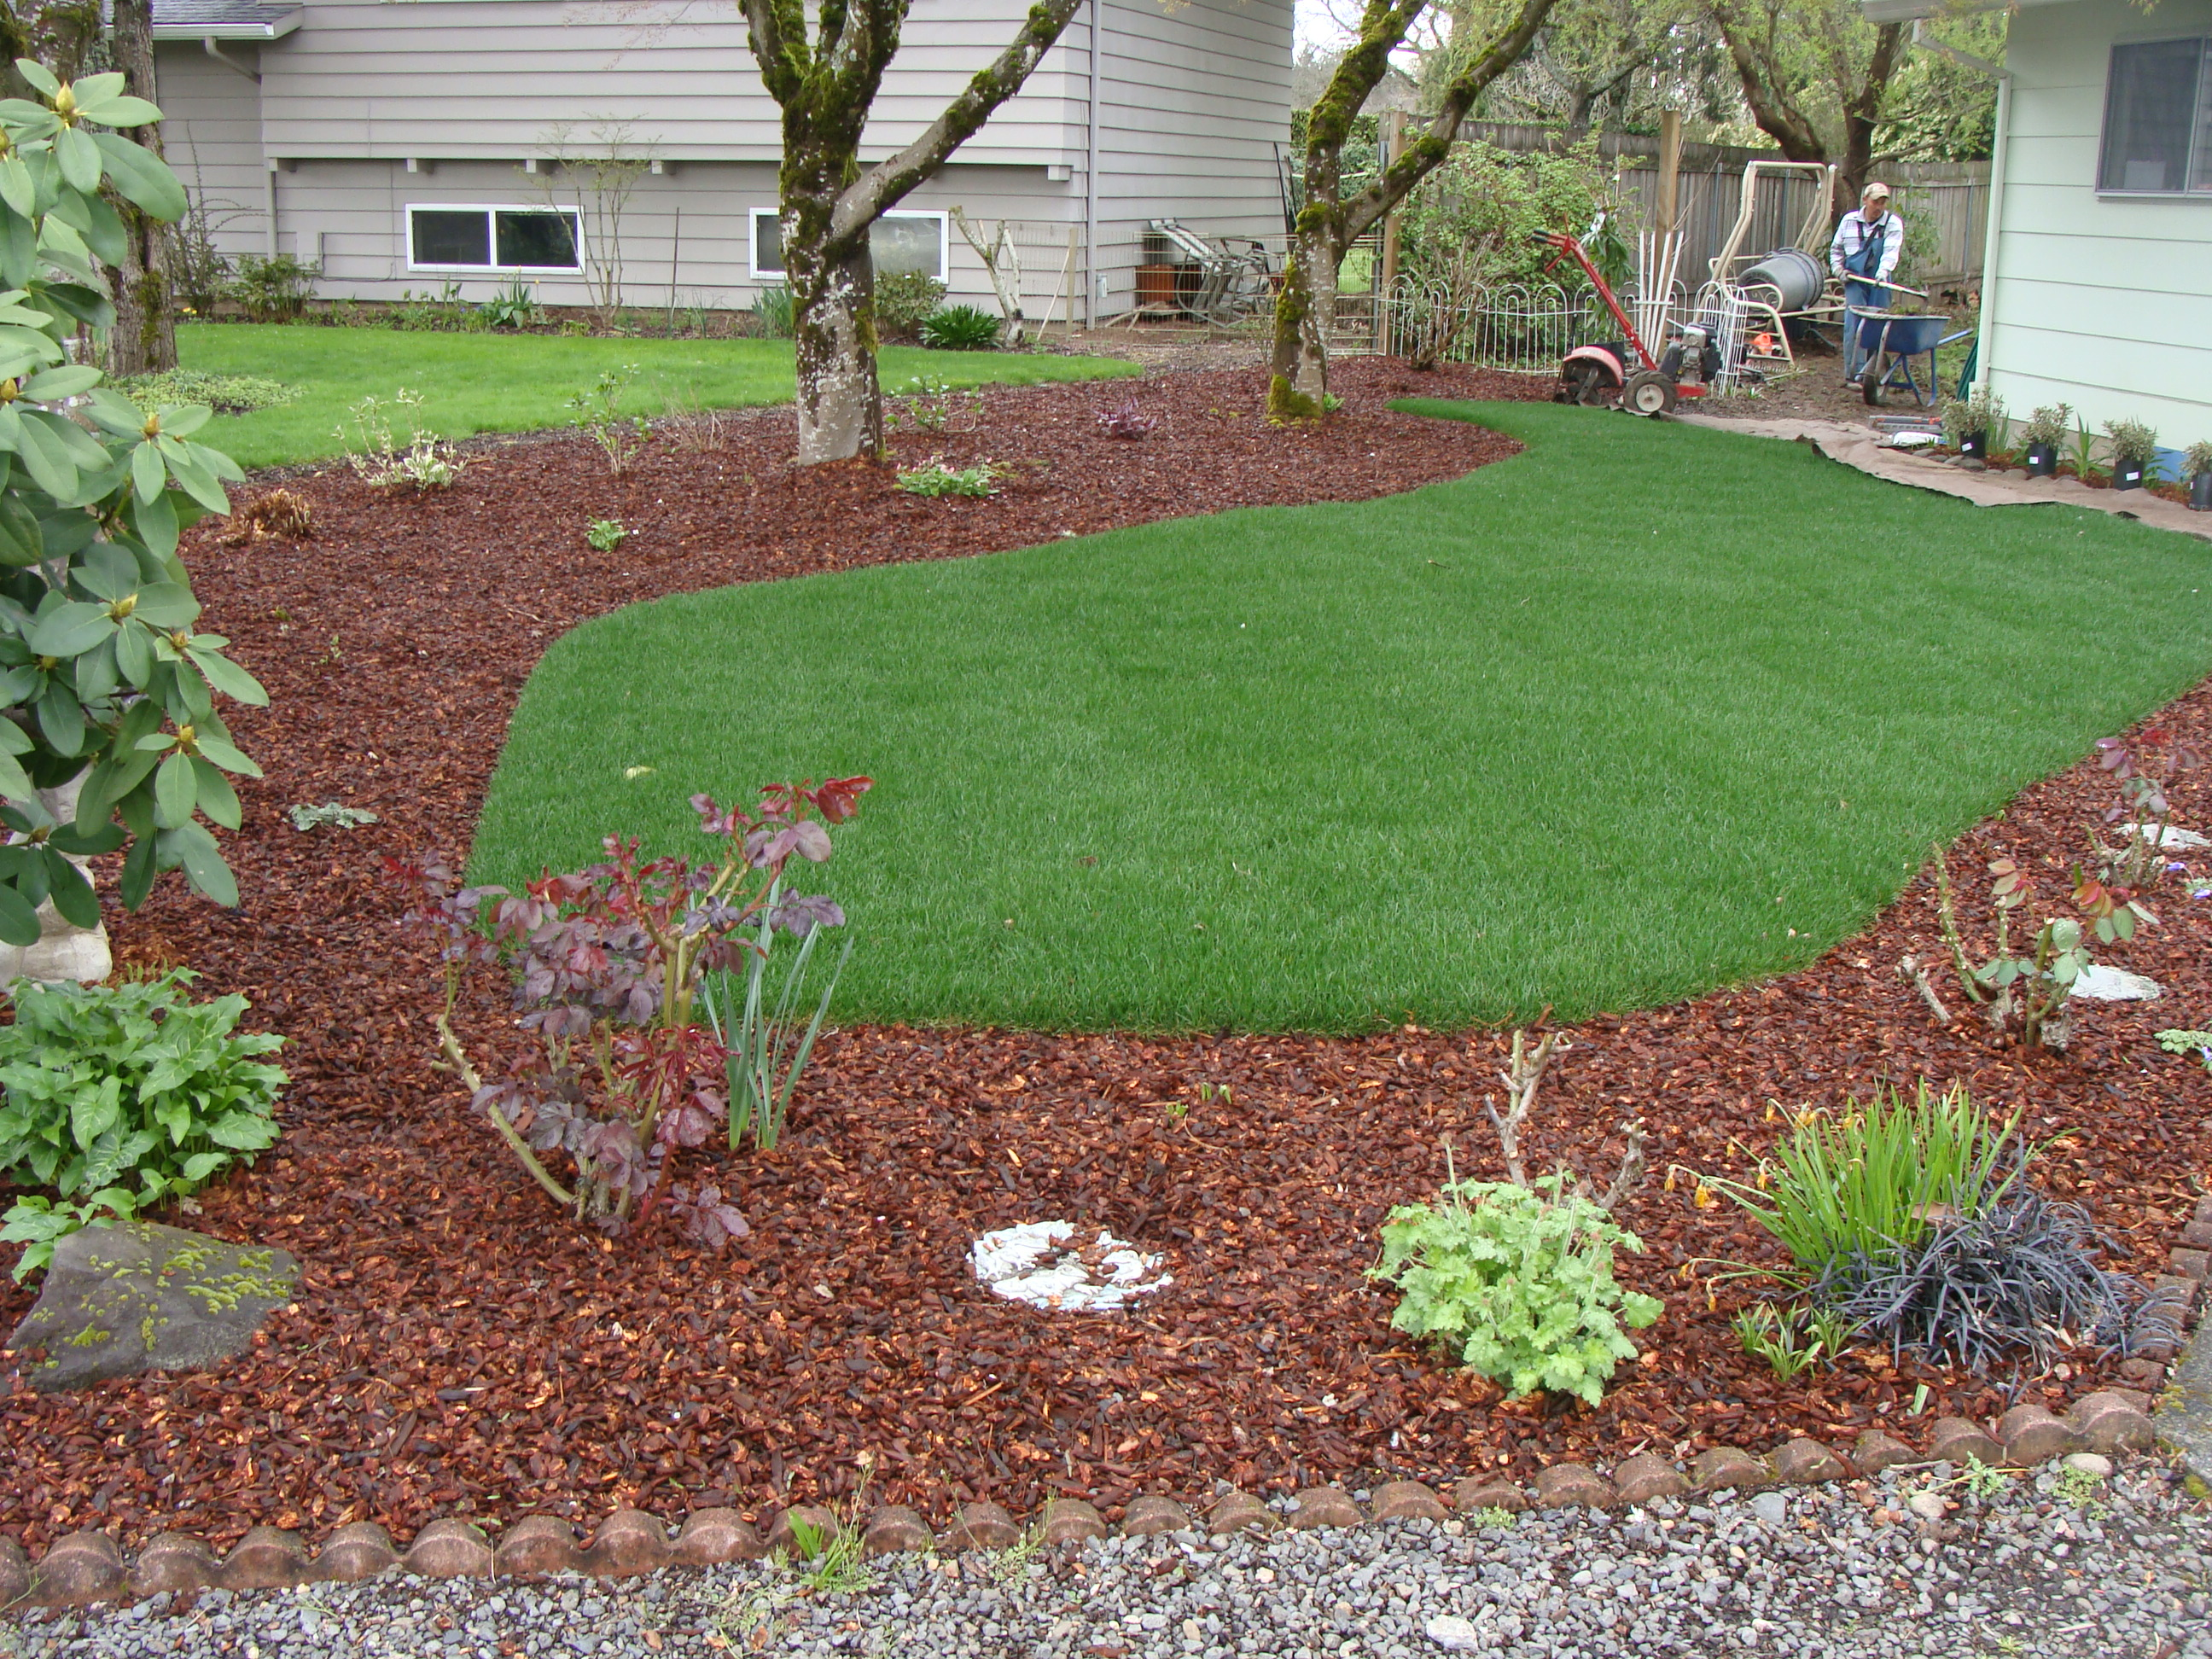 Quality tree service landscape maintenance llc oregon for Tree and garden services